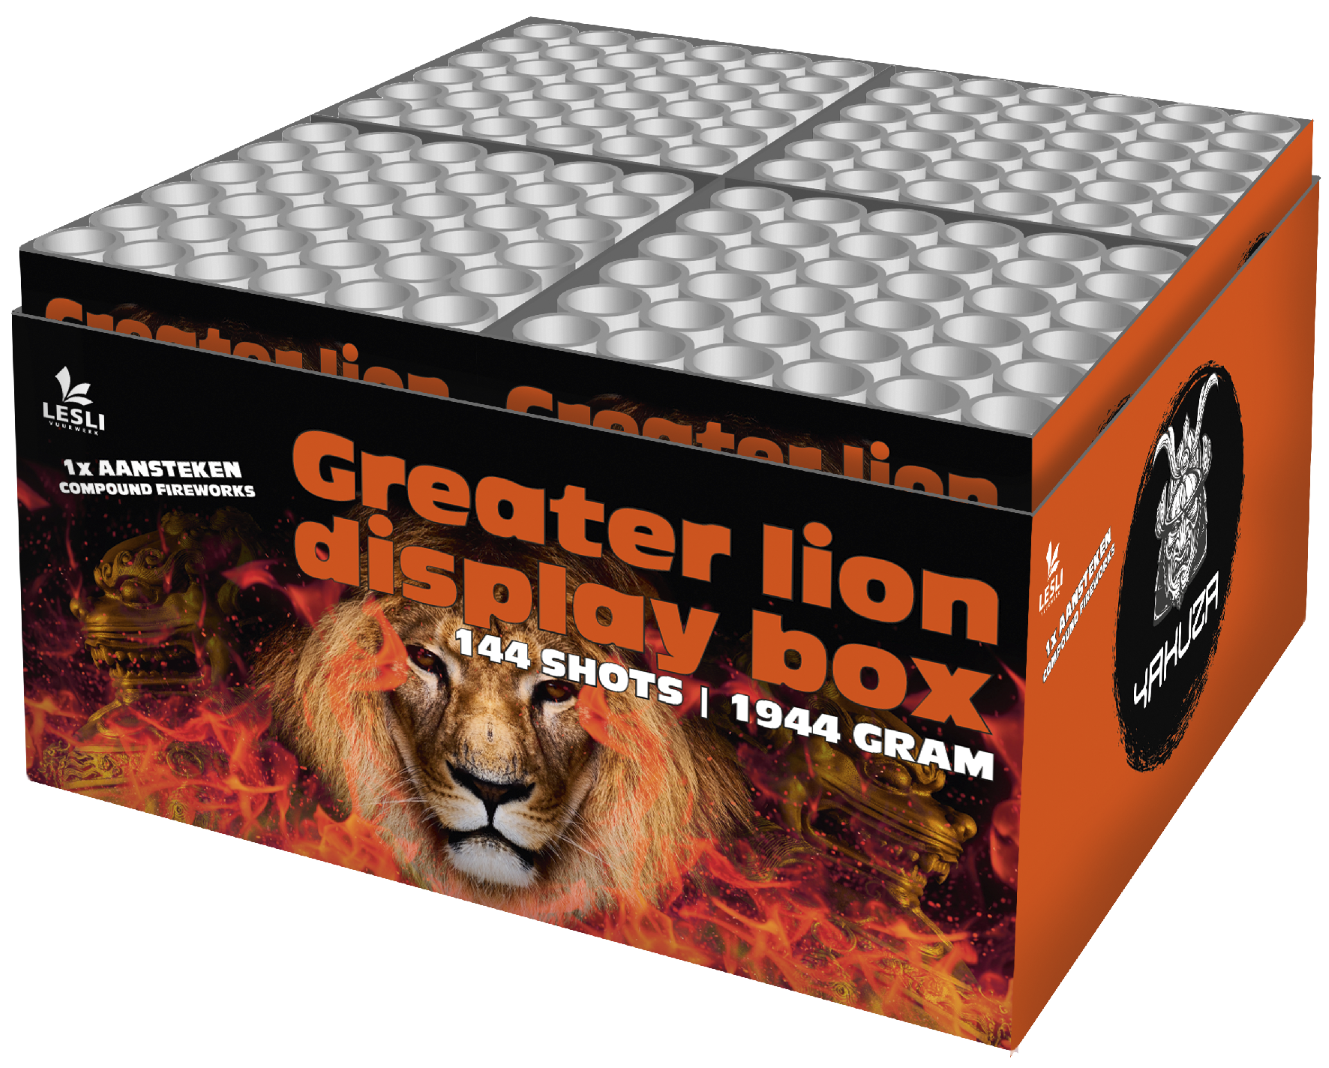 Greater Lion display box (Compound)